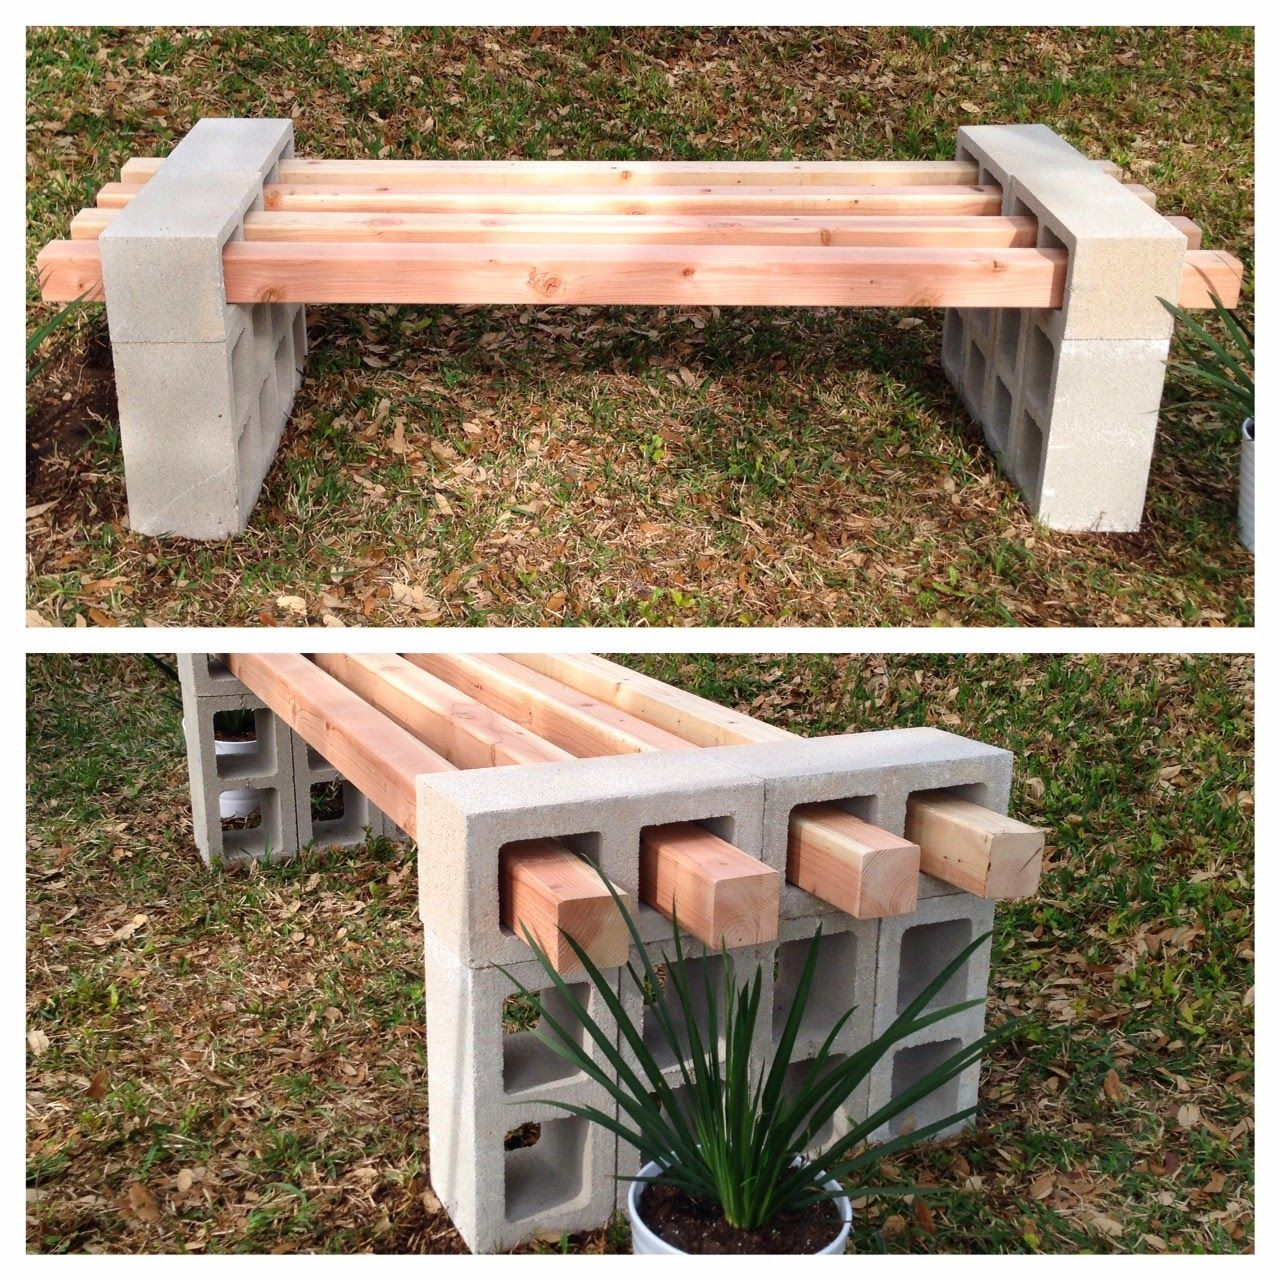 Astounding Diy Cinder Block Bench Backyard Furniture Garden Projects Evergreenethics Interior Chair Design Evergreenethicsorg